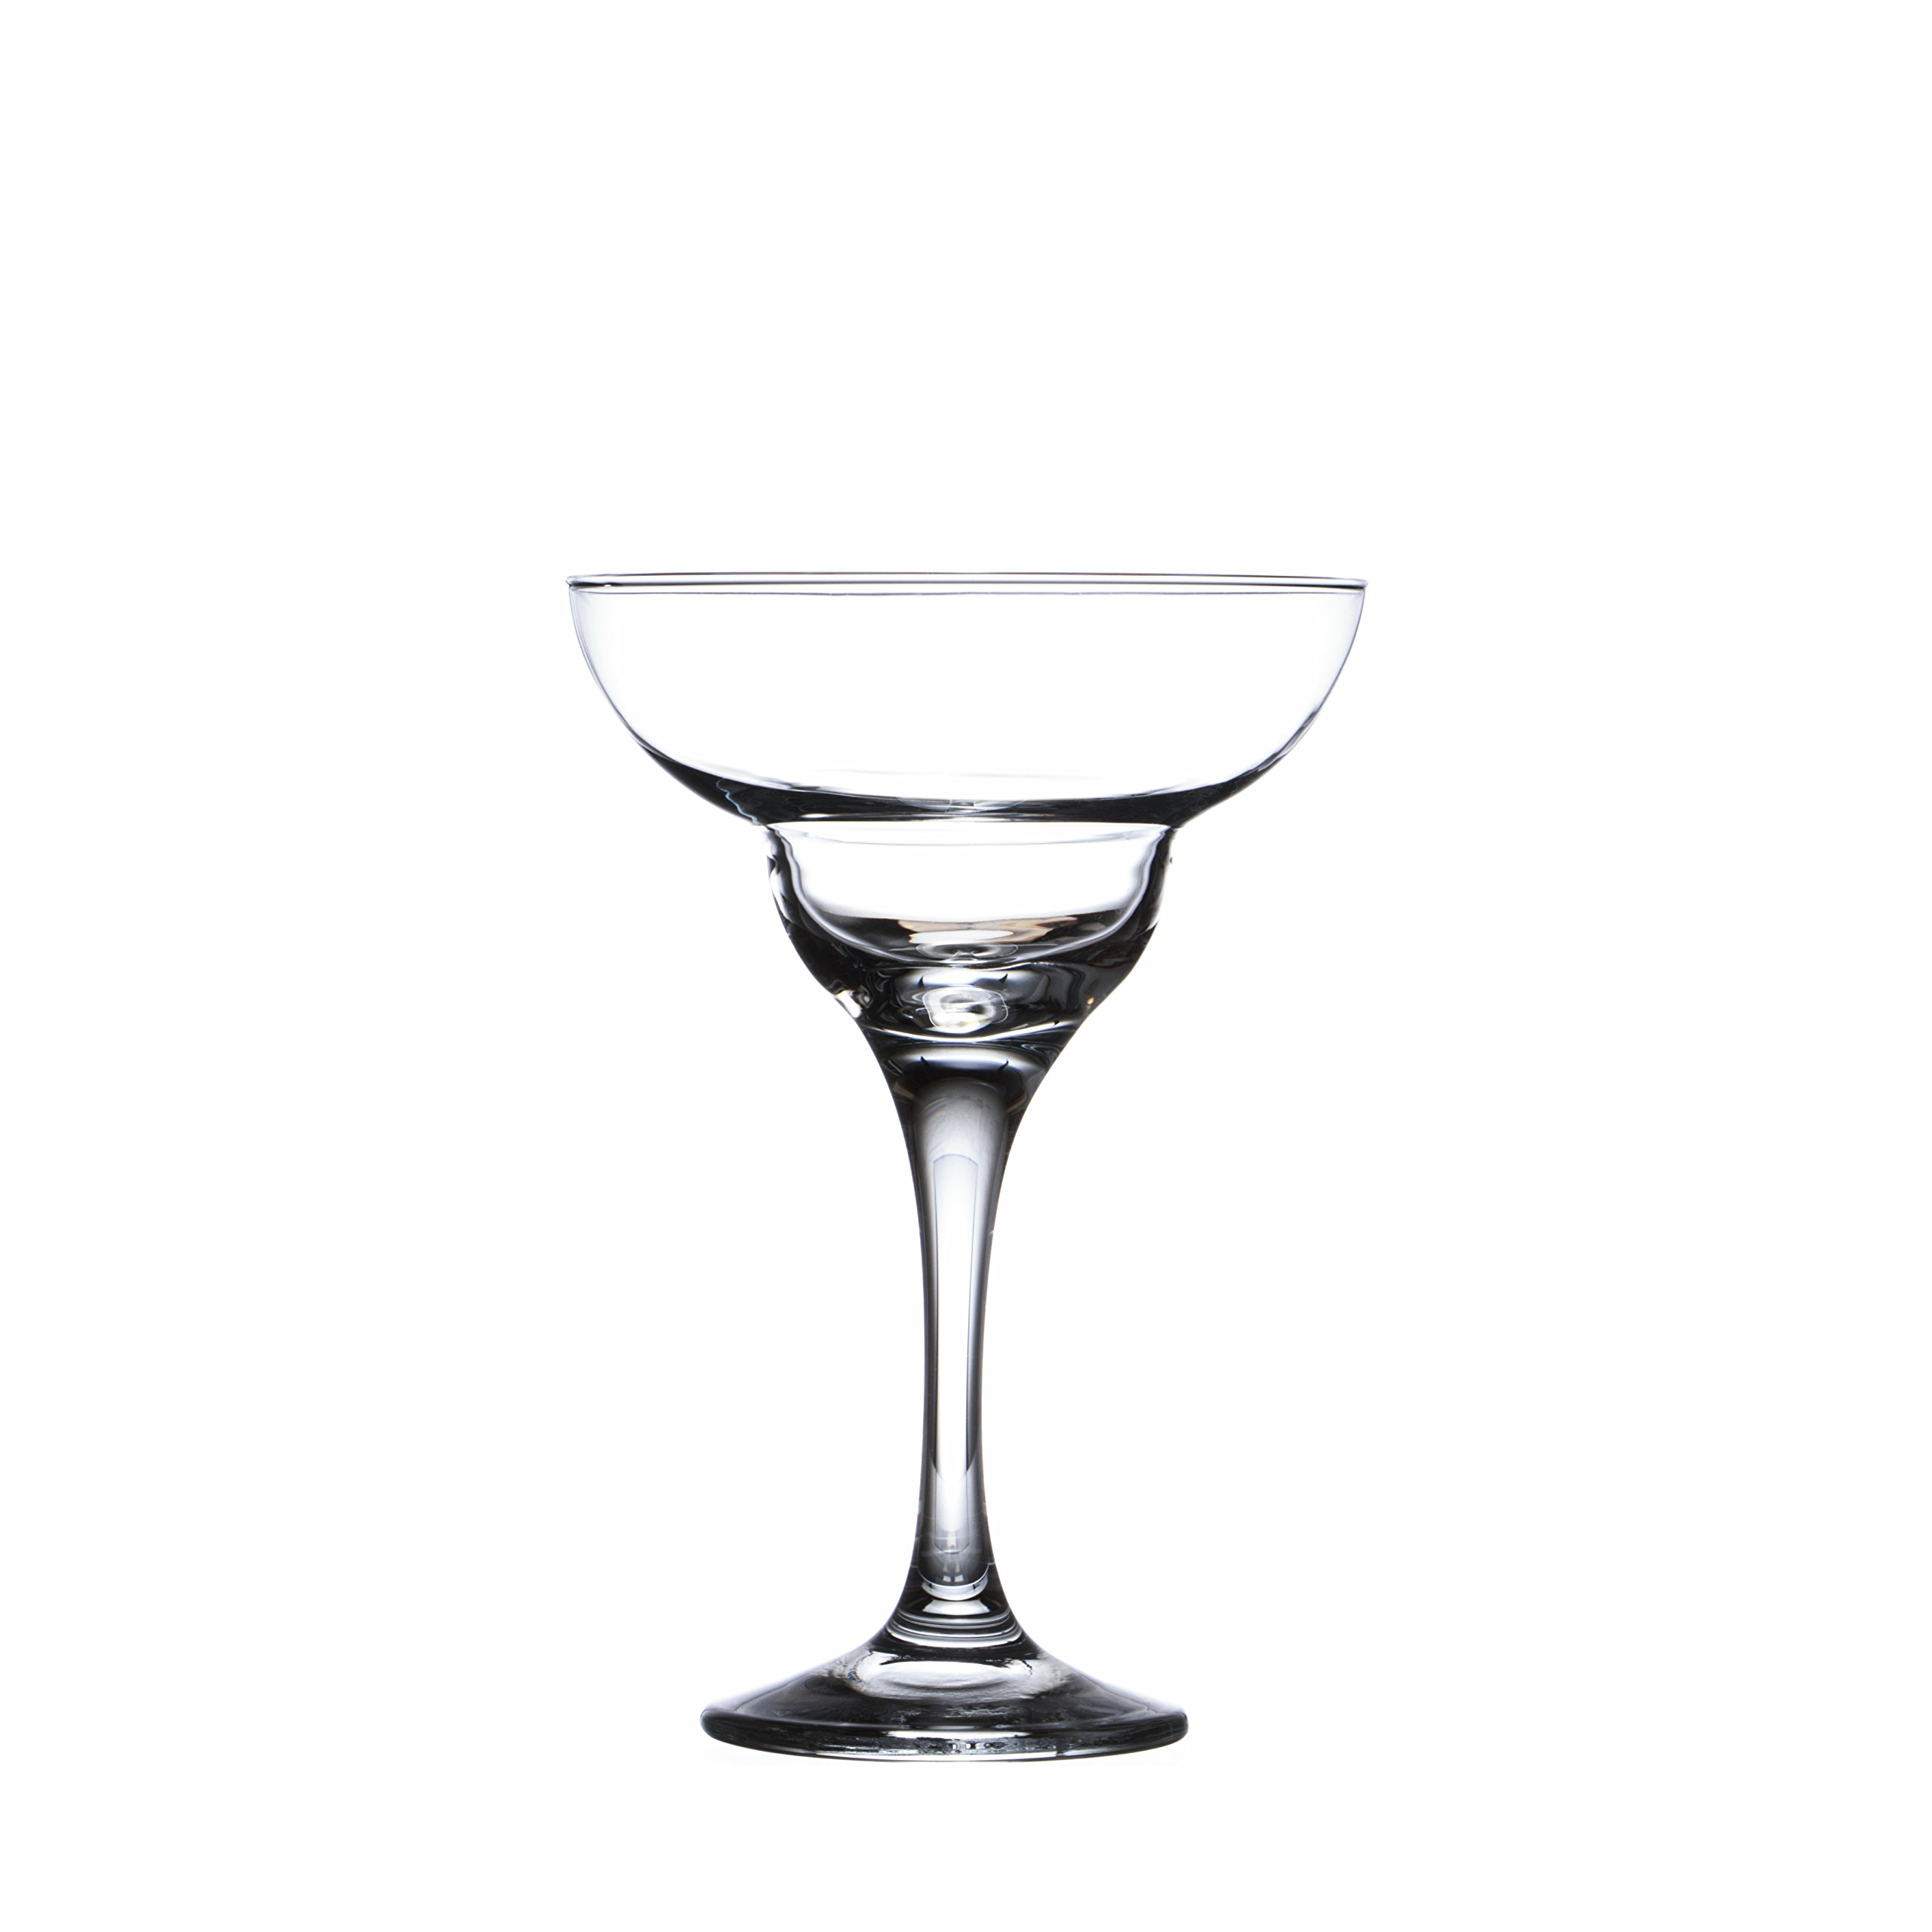 12-Piece Champagne Glasses Set - Crystal Margarita Cocktails Wine Glass, Restaurants&Hotel Quality, 9 oz. (280 ml.)